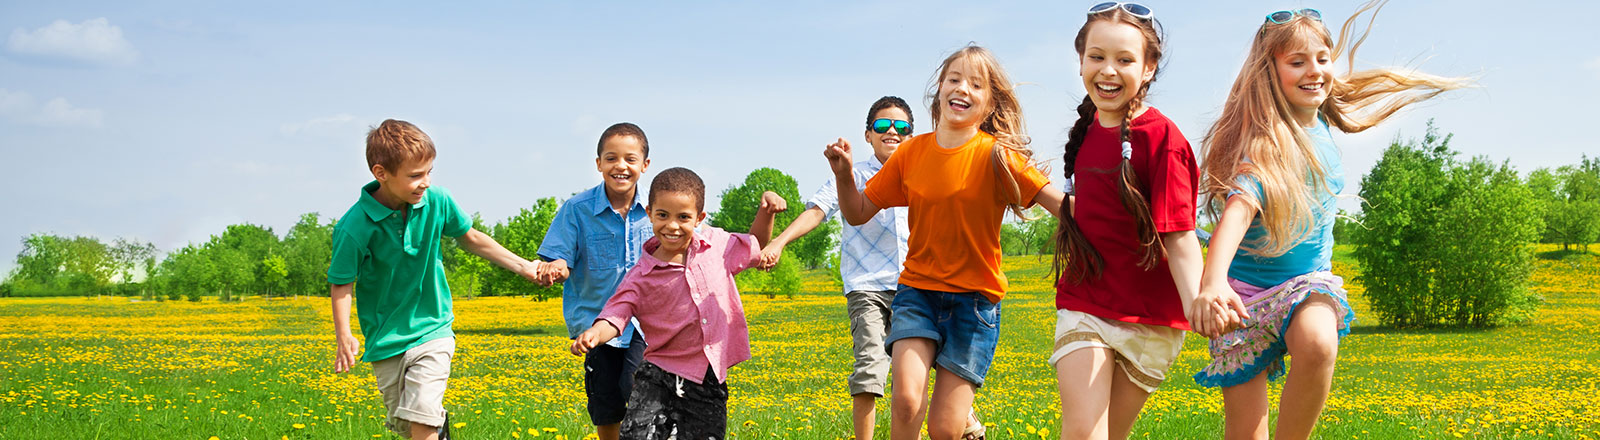 Group of kids running through a field on a sunny day